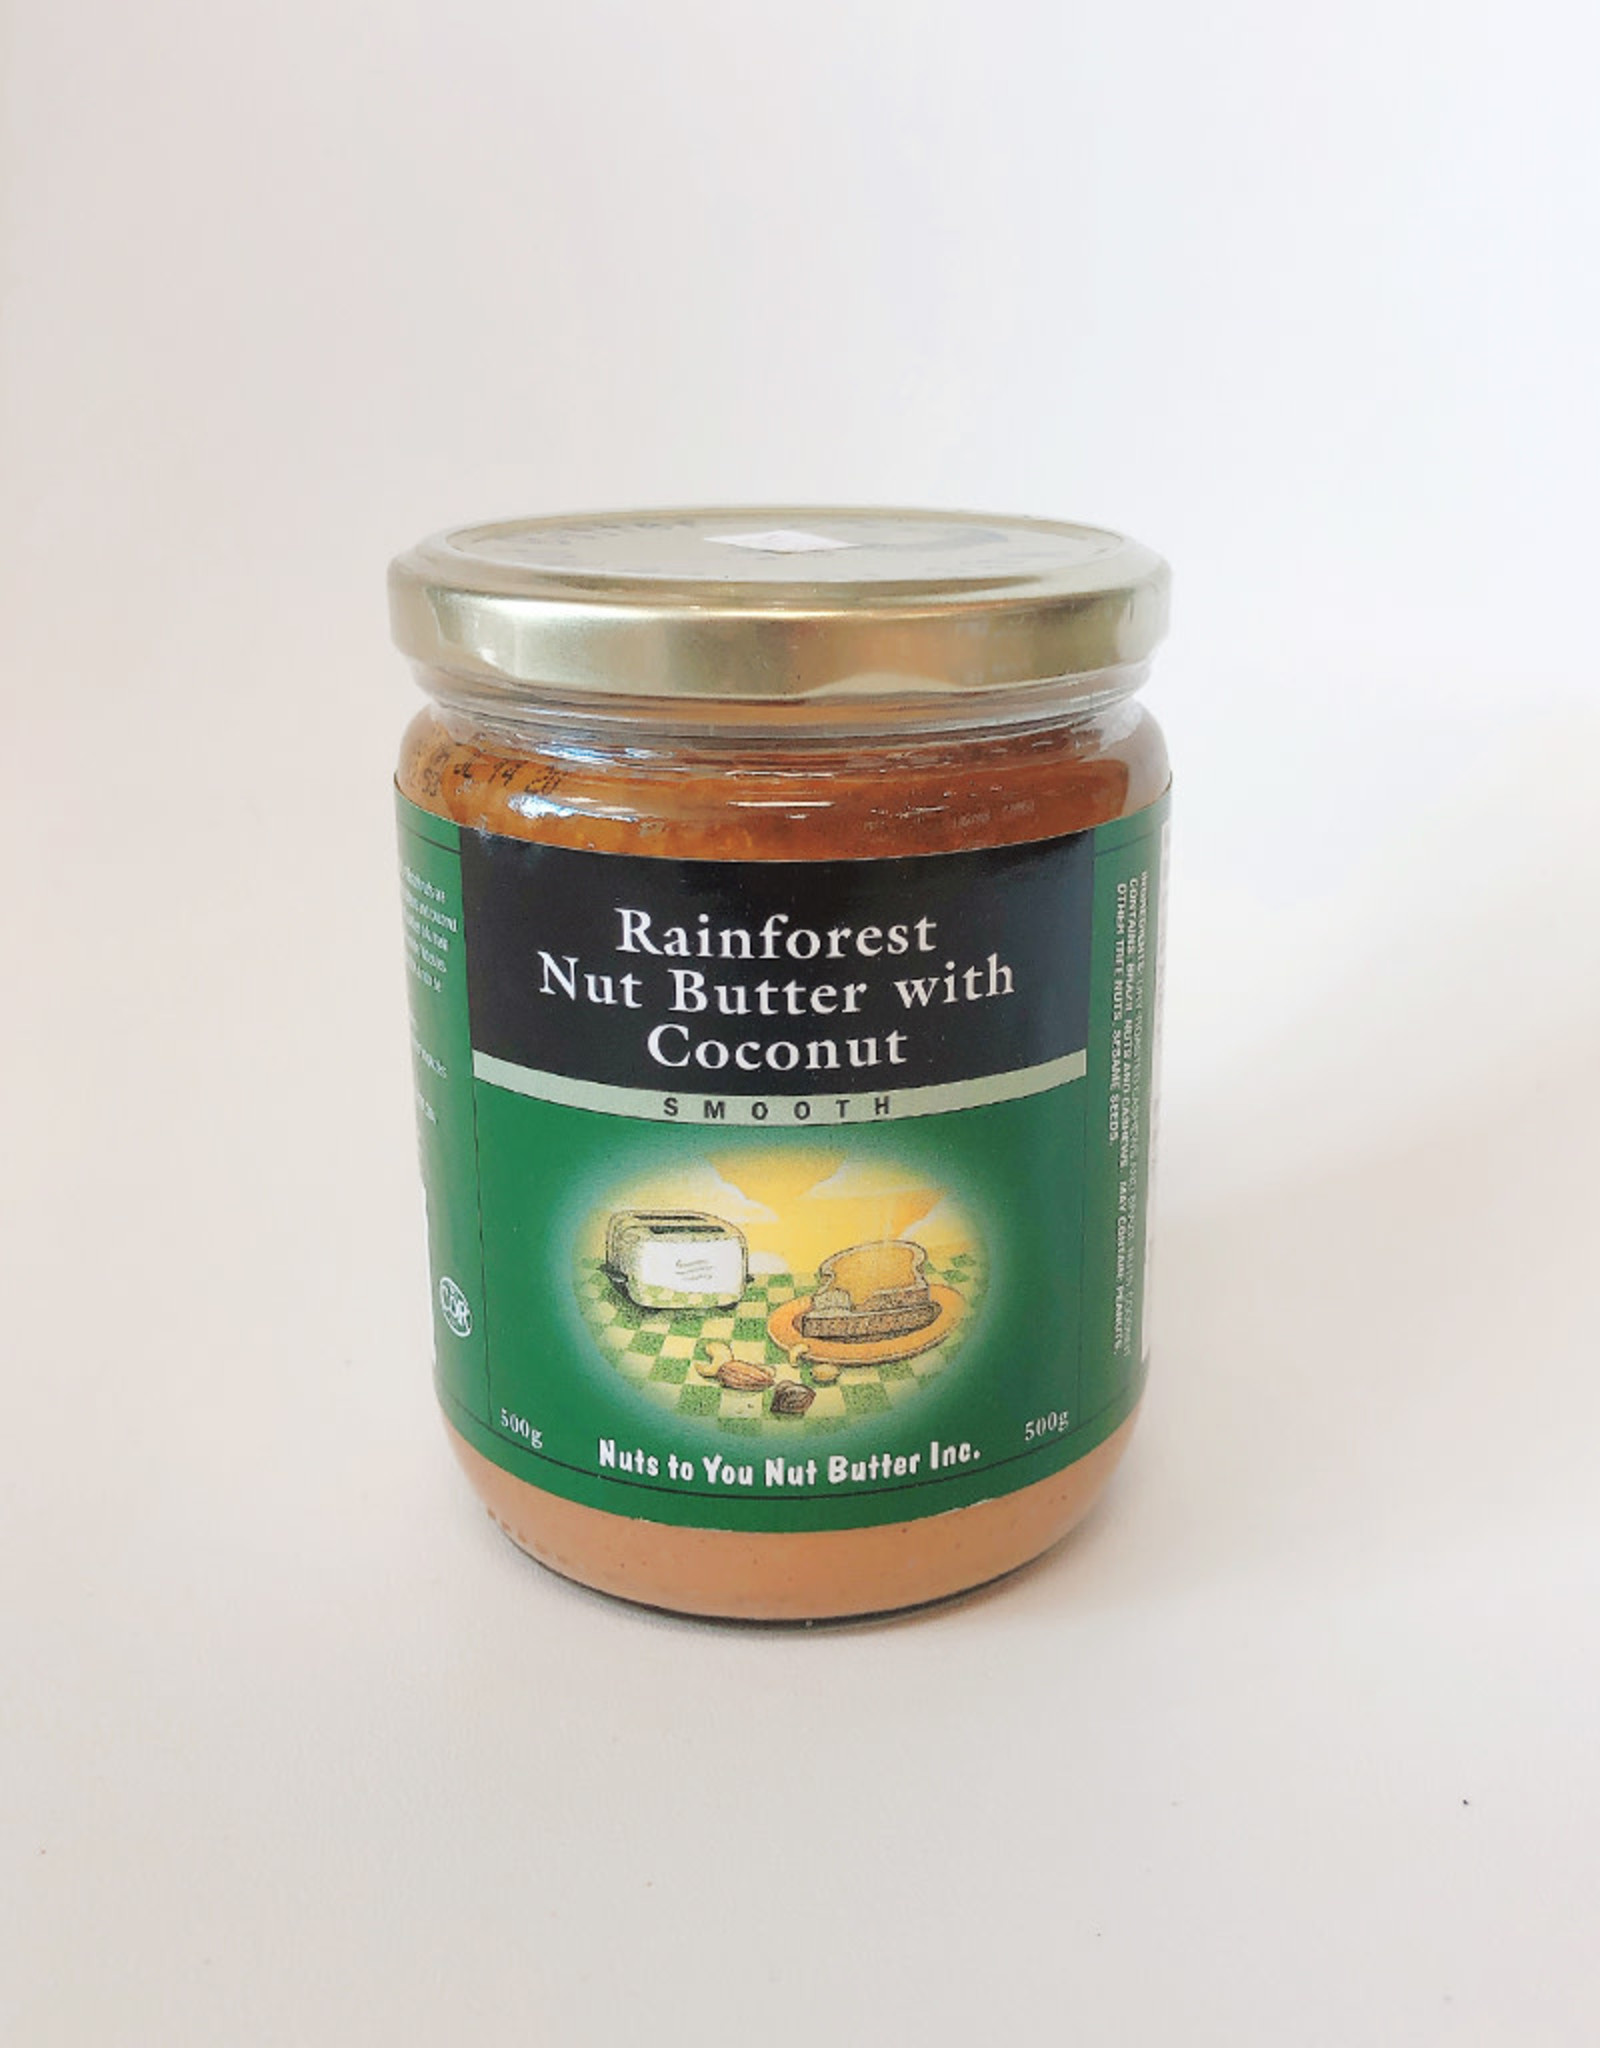 Nuts to You NTY - Rainforest Butter, Nut Butter with Coconut (500g)